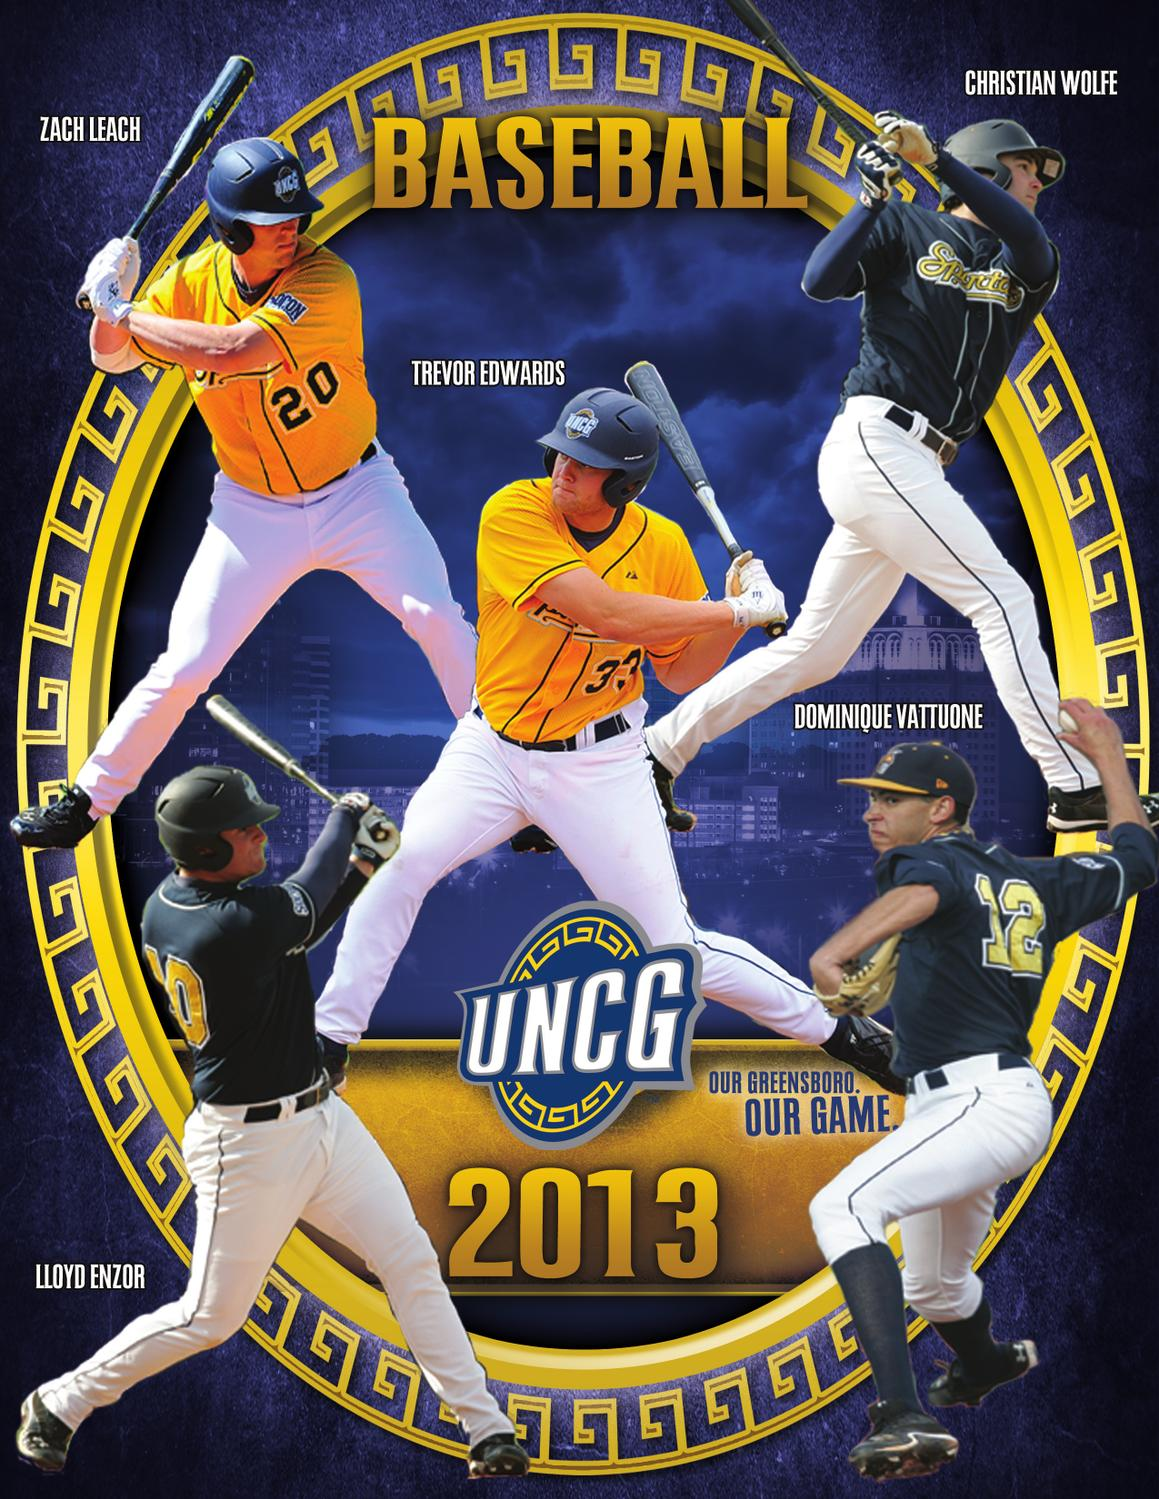 2013 UNCG Baseball Digital Guide by UNCG Athletics - issuu 9aa8892bc